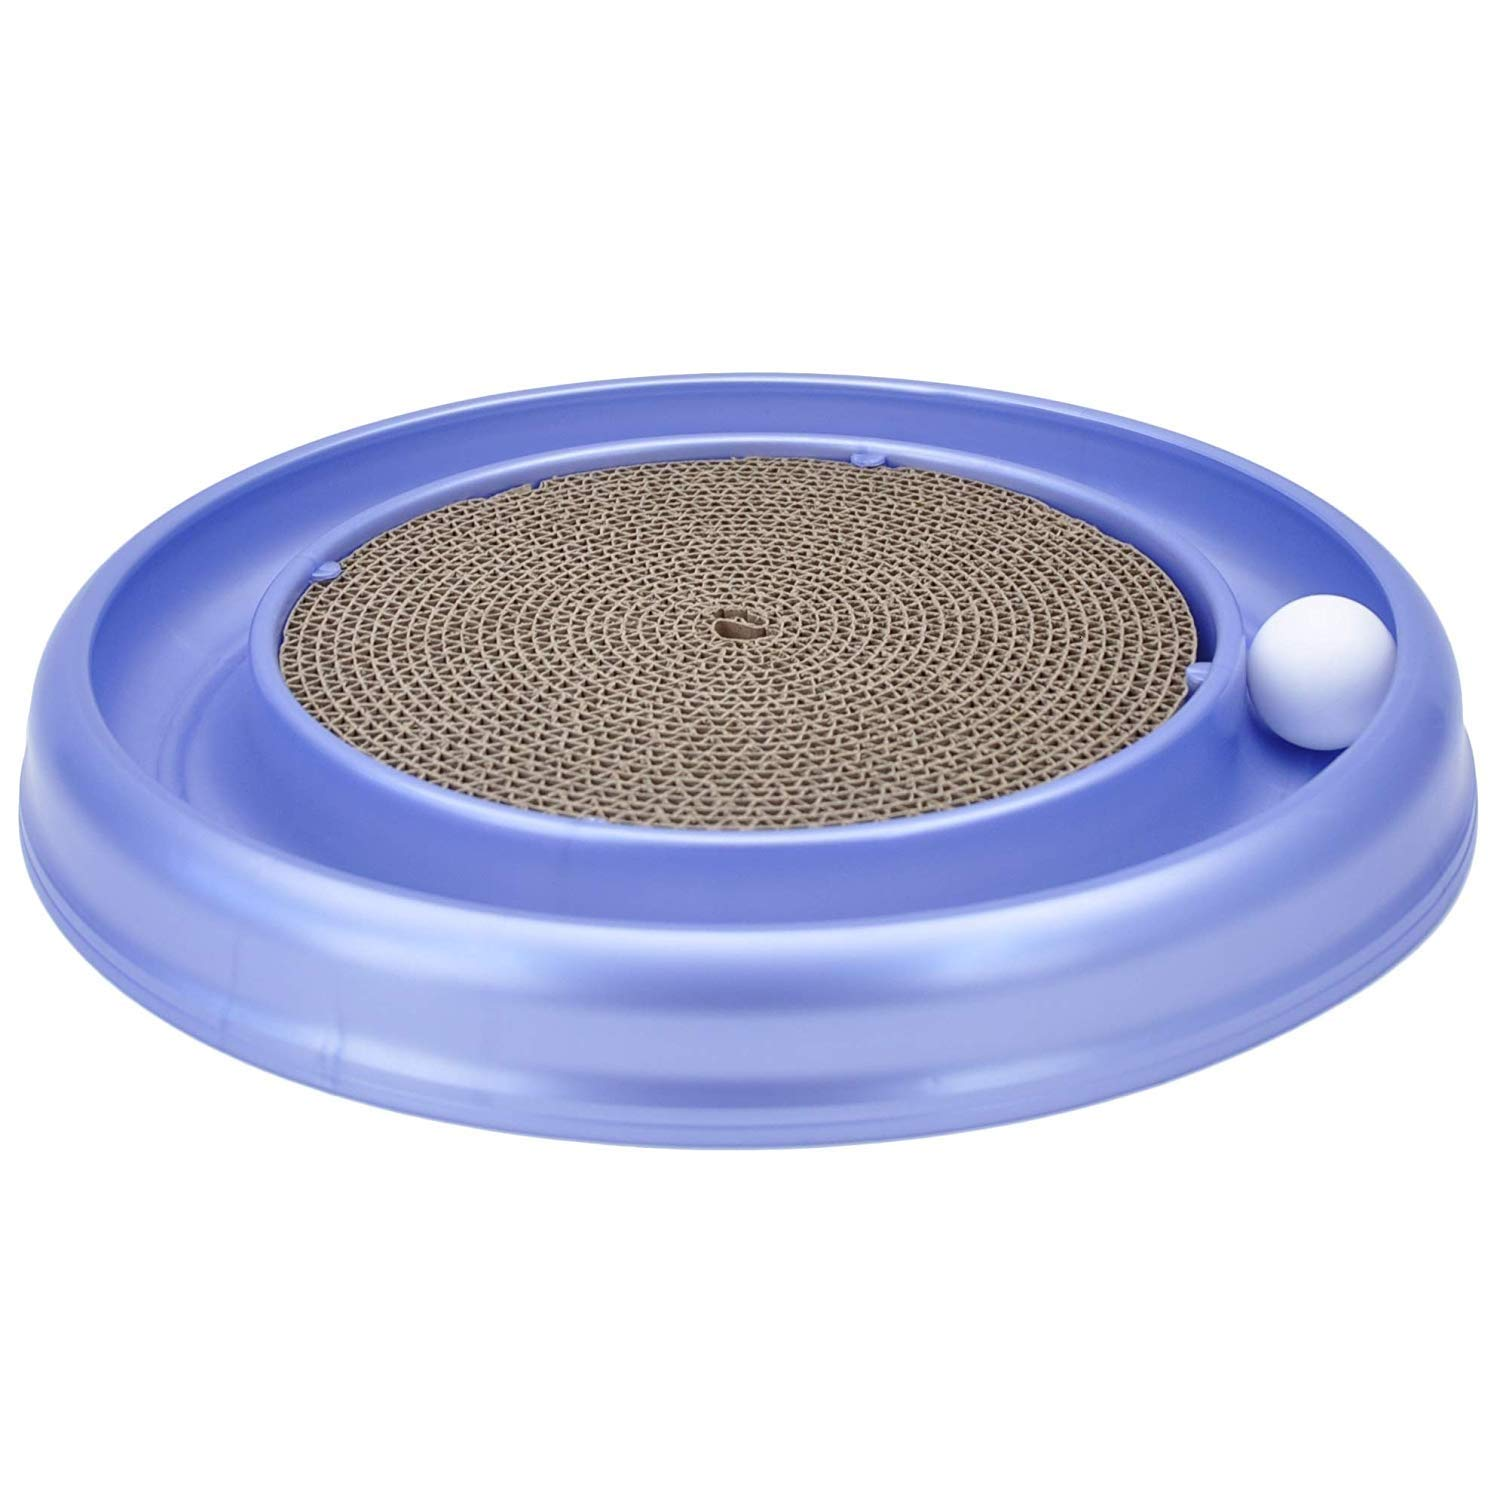 Bergan Turbo Scratcher Cat Toy, Colors may vary (Limited Edition) by Bergan.